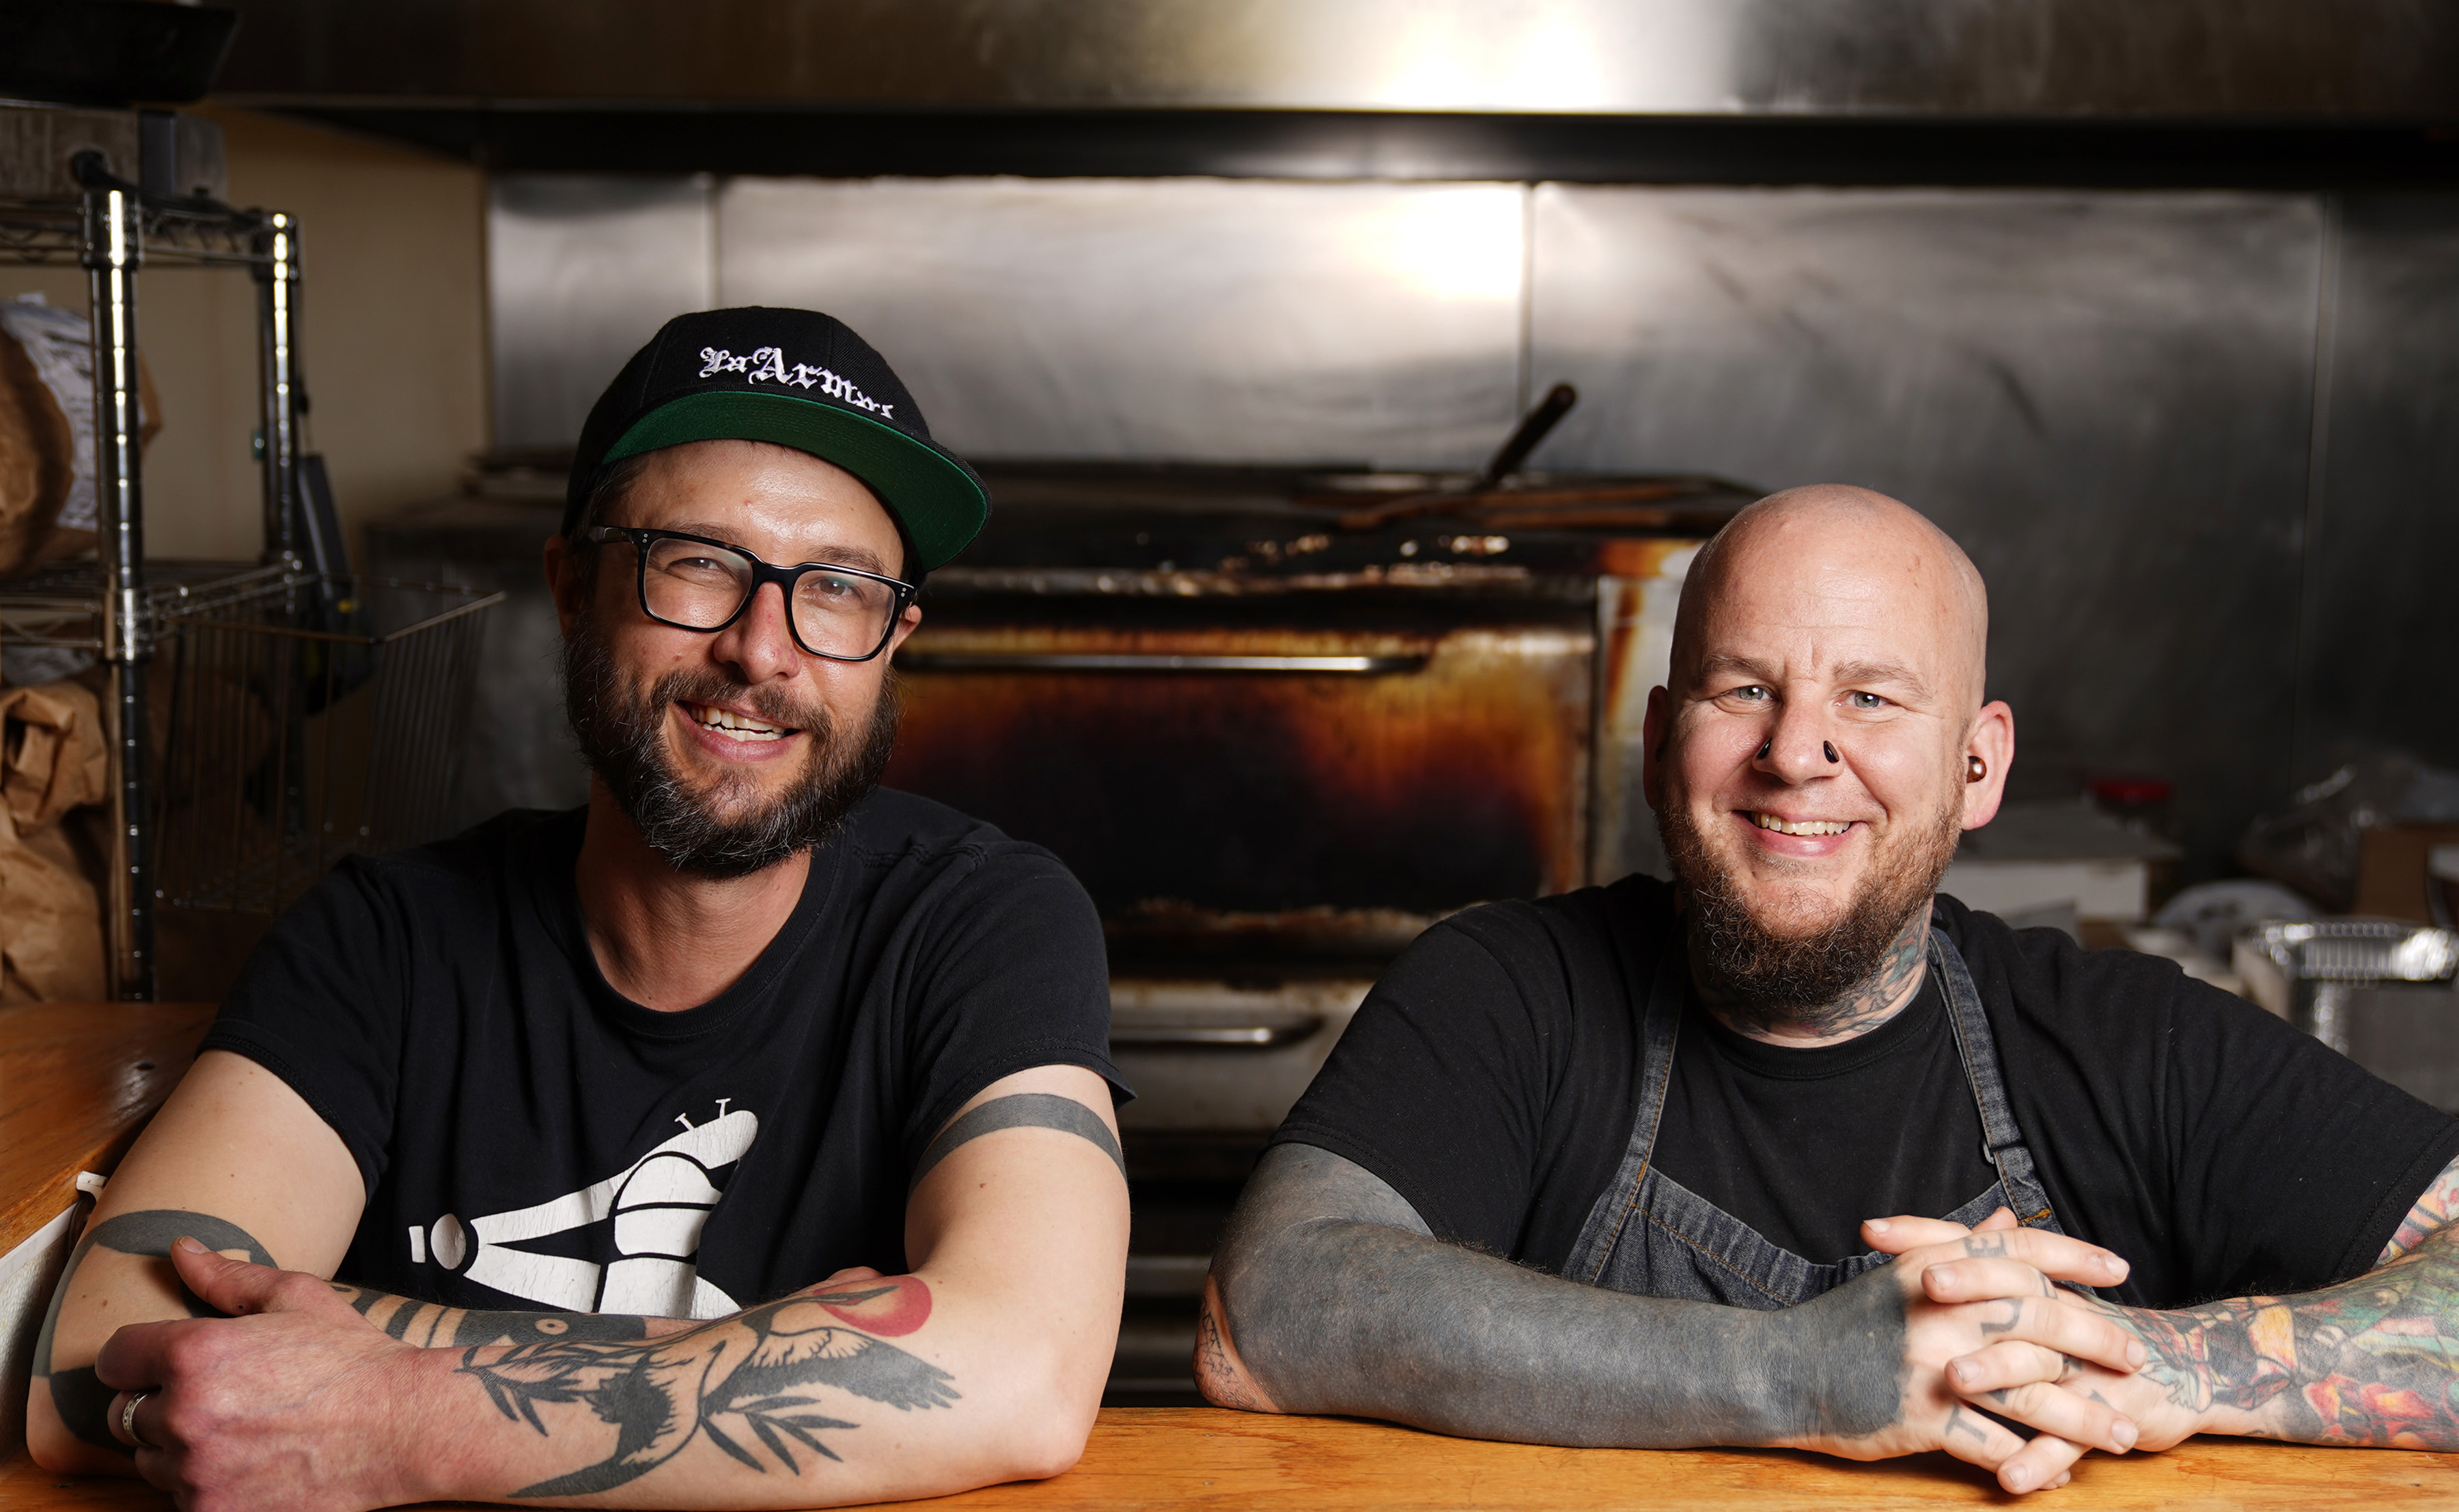 Eureka Compass Vegan Food founder Colin Anderson, left, along with chef John Stockman stood for a portrait as they took a break from dishing up orders.